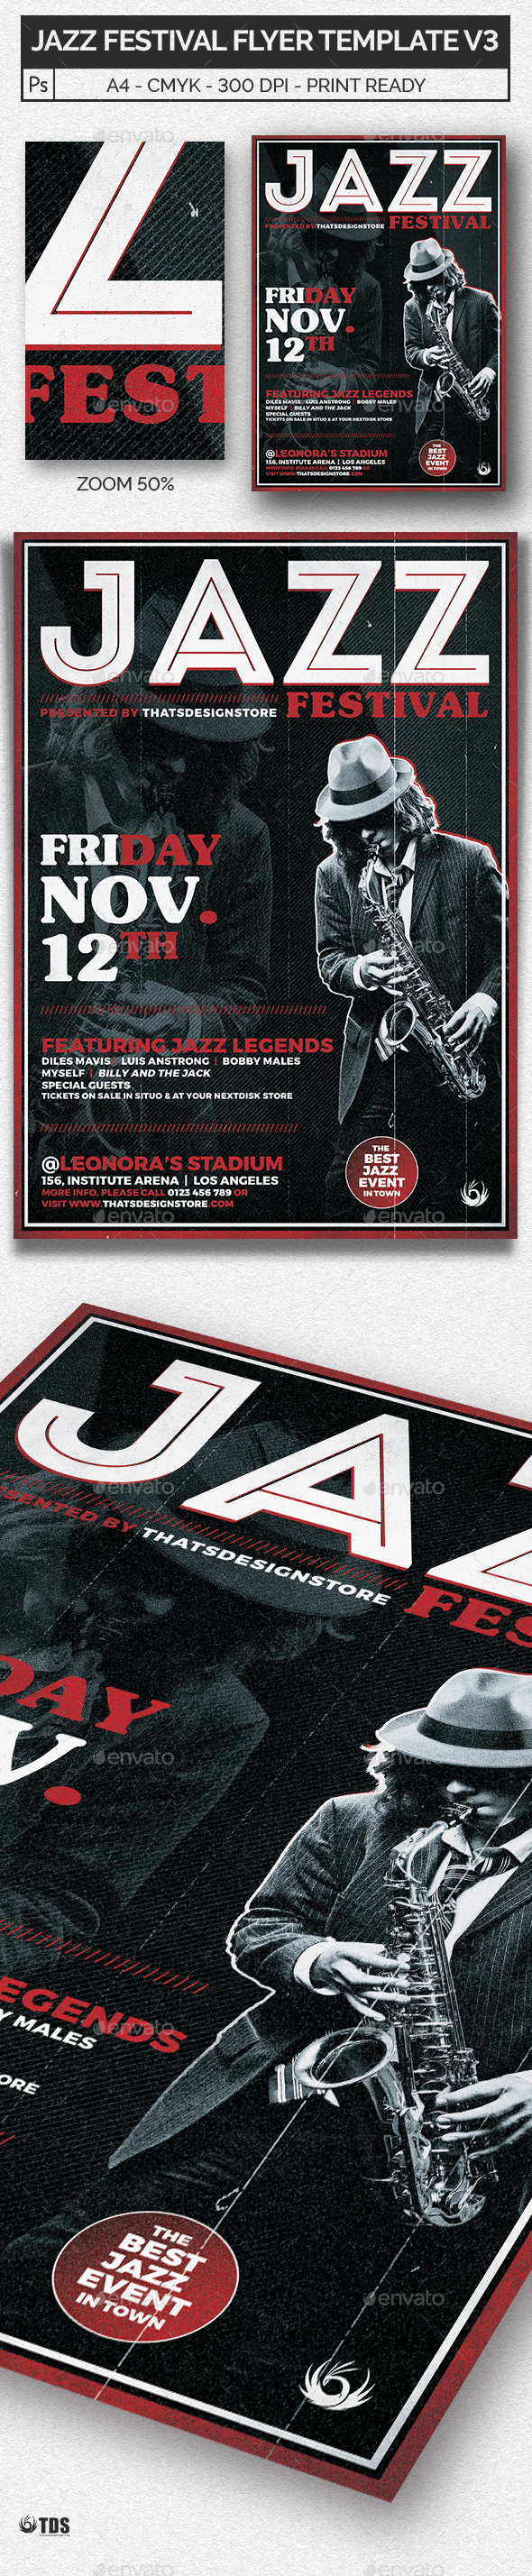 Jazz Festival Flyer Template V3 - Concerts Events